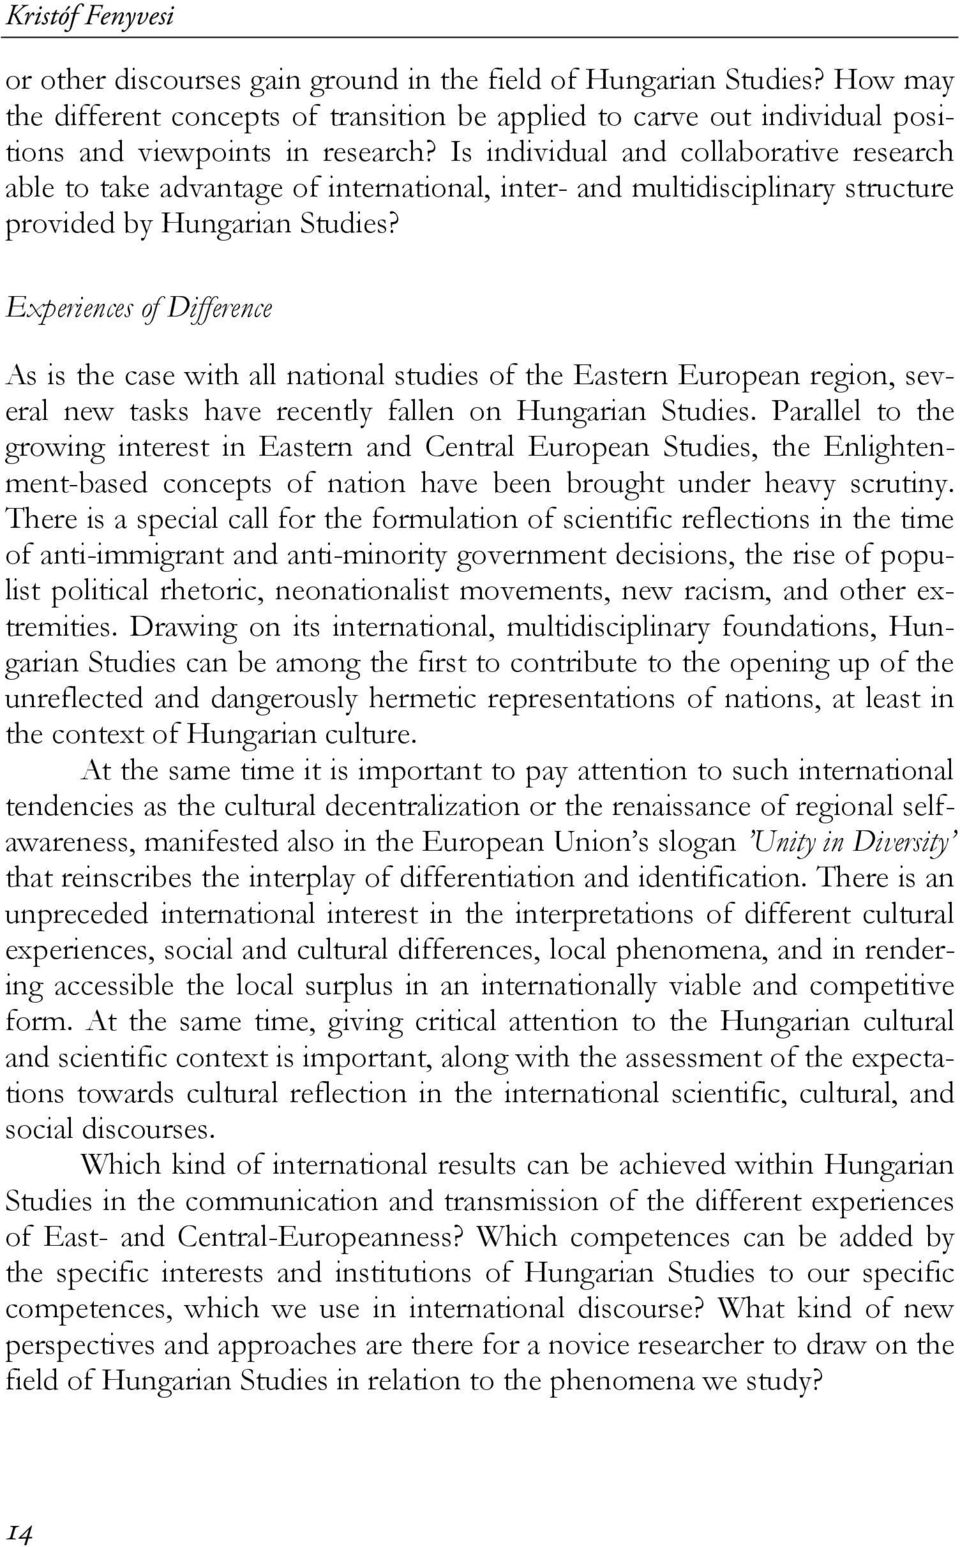 Is individual and collaborative research able to take advantage of international, inter- and multidisciplinary structure provided by Hungarian Studies?